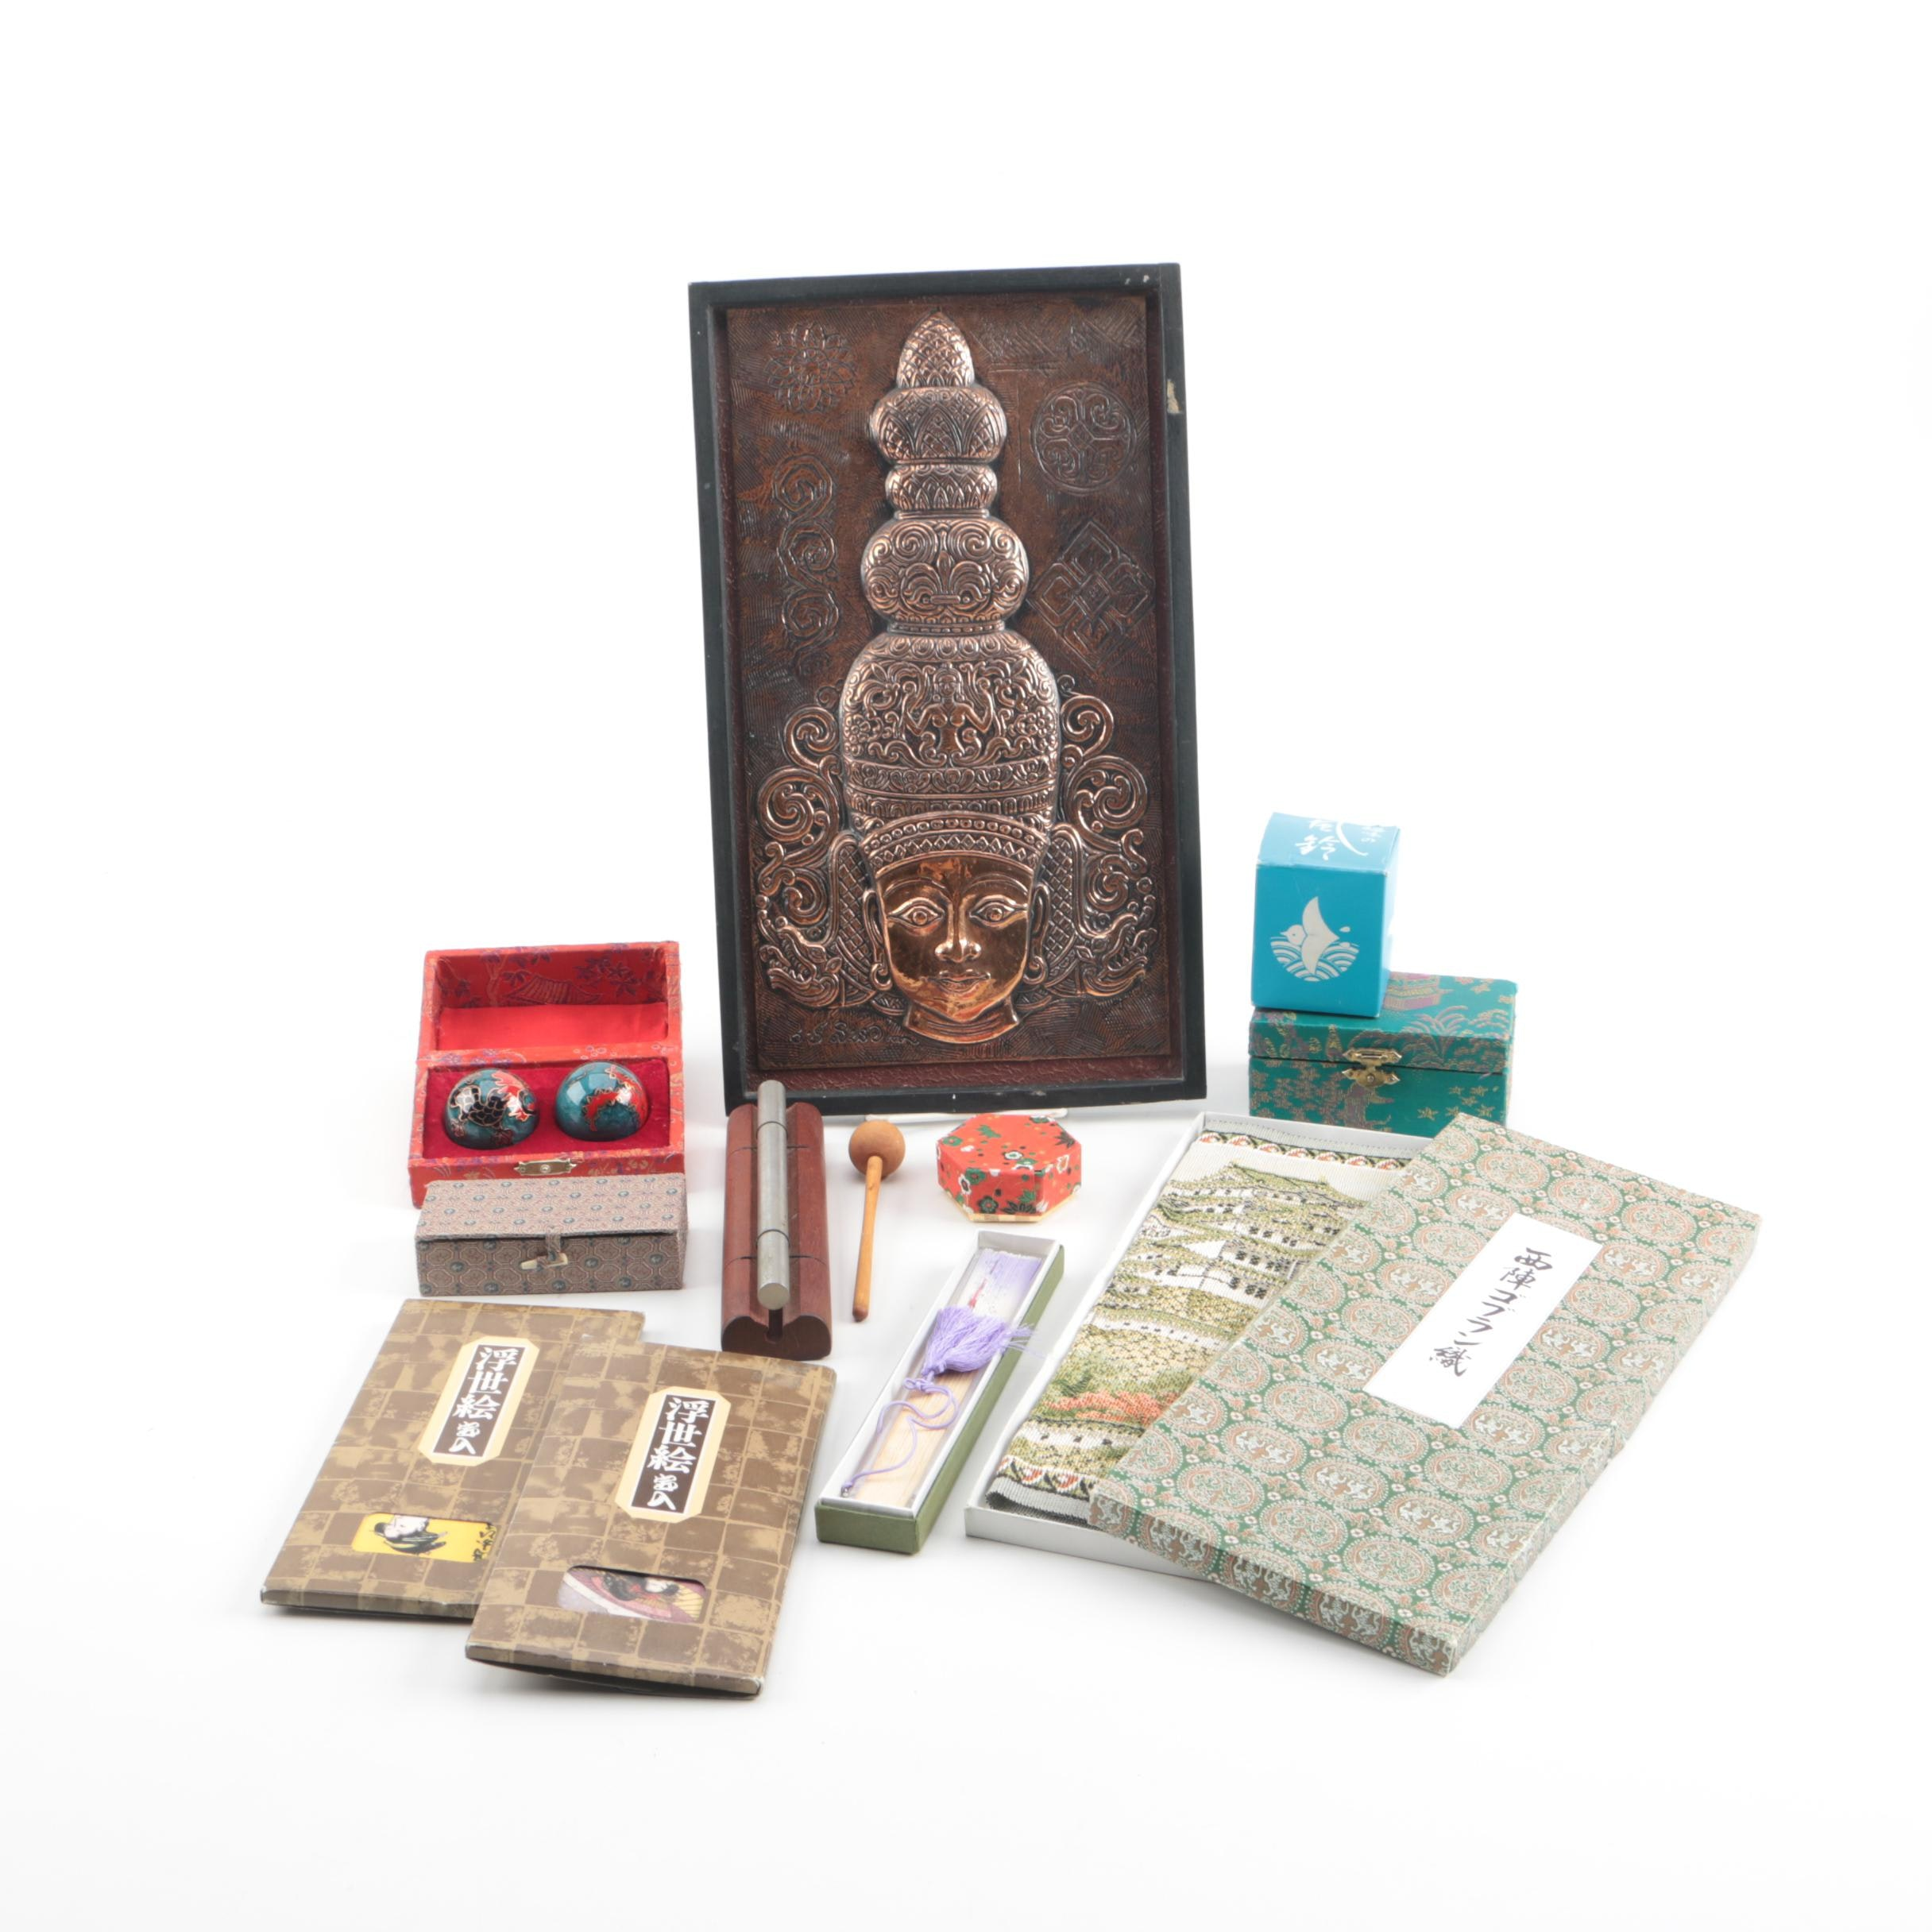 Asian Souvenirs and Decor Including JW Stannard Energy Chime and Baoding Balls